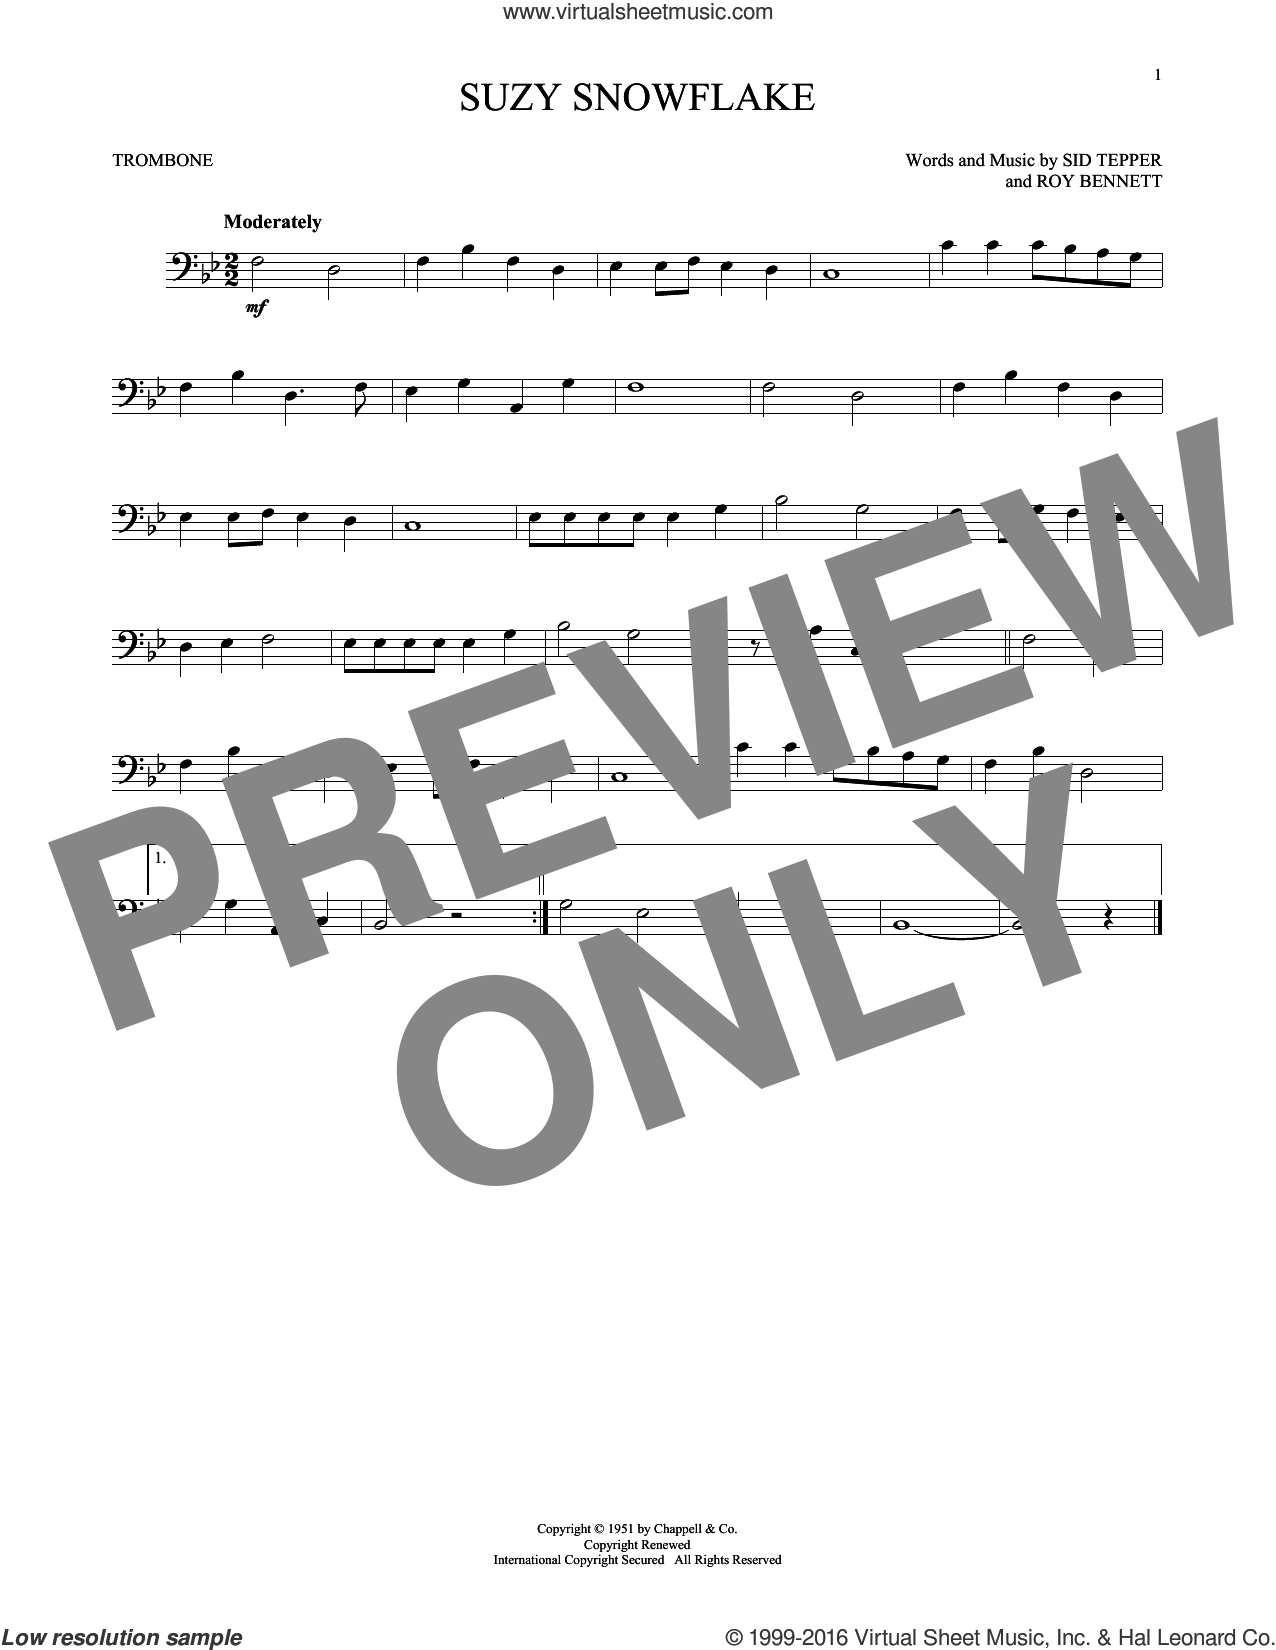 Suzy Snowflake sheet music for trombone solo by Roy Bennett and Sid Tepper. Score Image Preview.